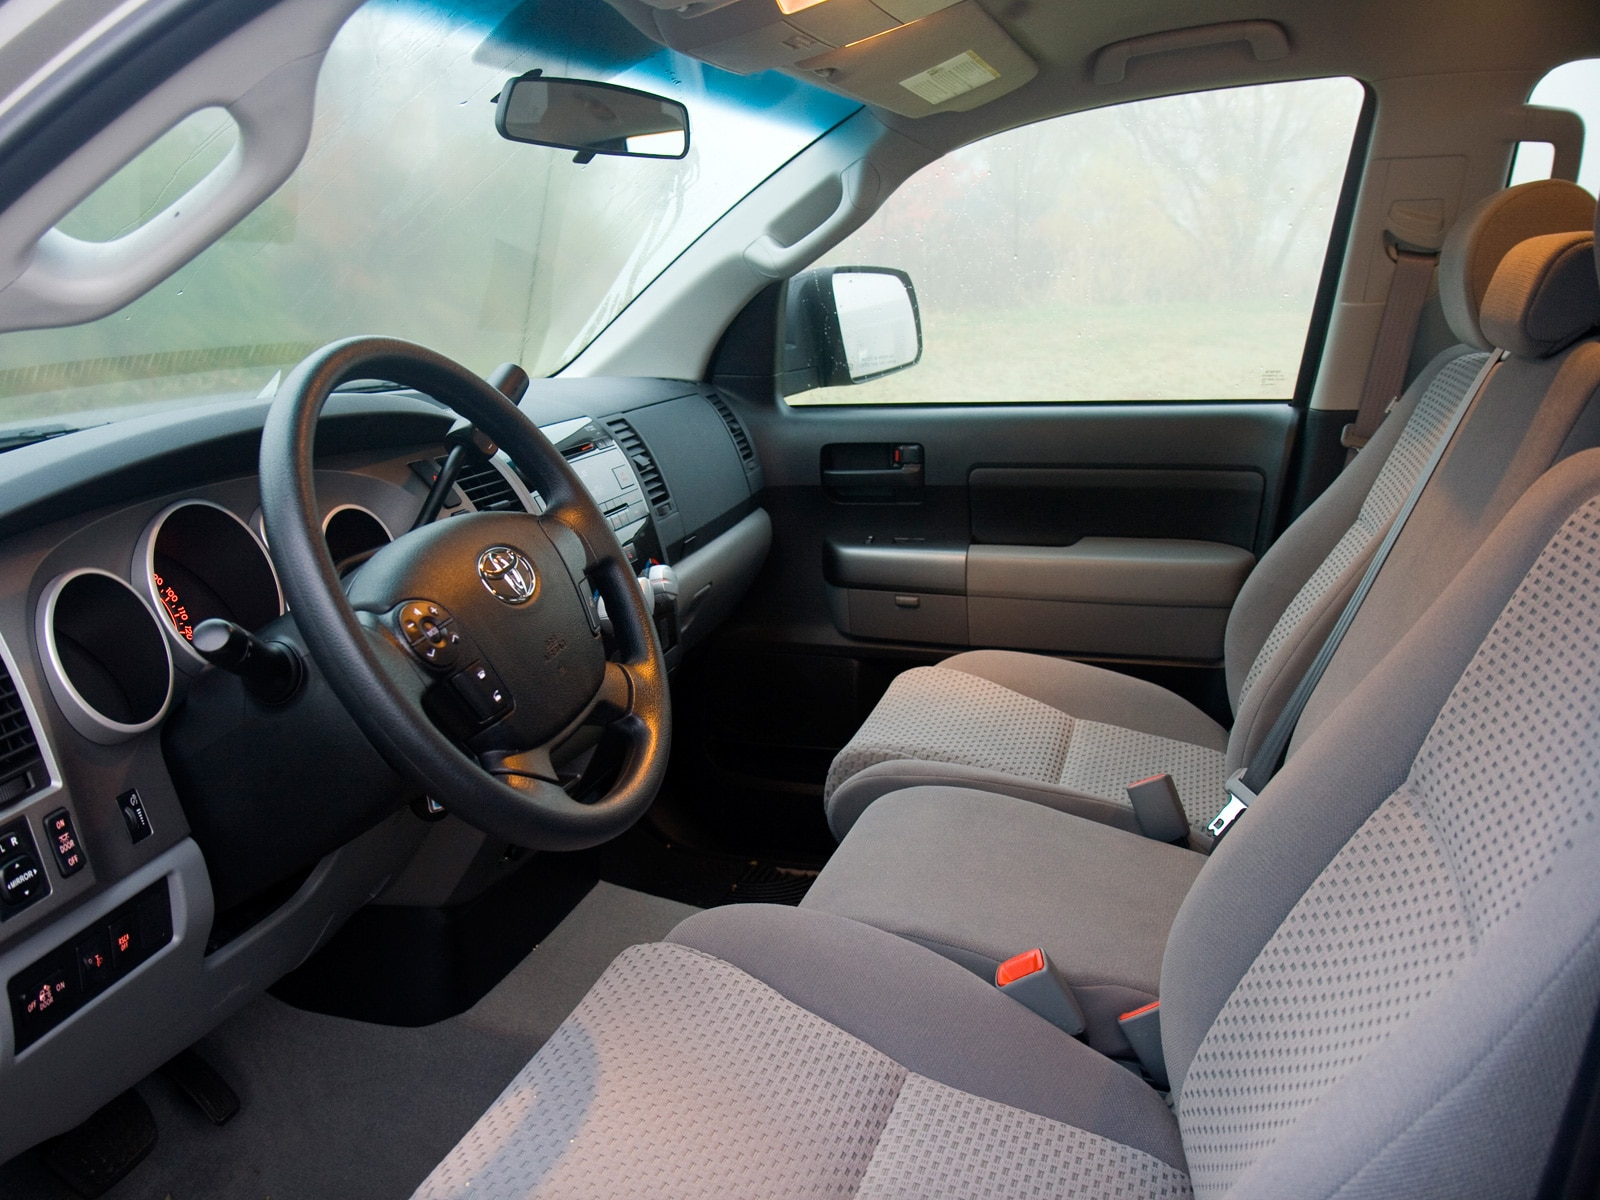 2010 Toyota Tundra Double Cab - Toyota Fullsize Pickup Truck Review